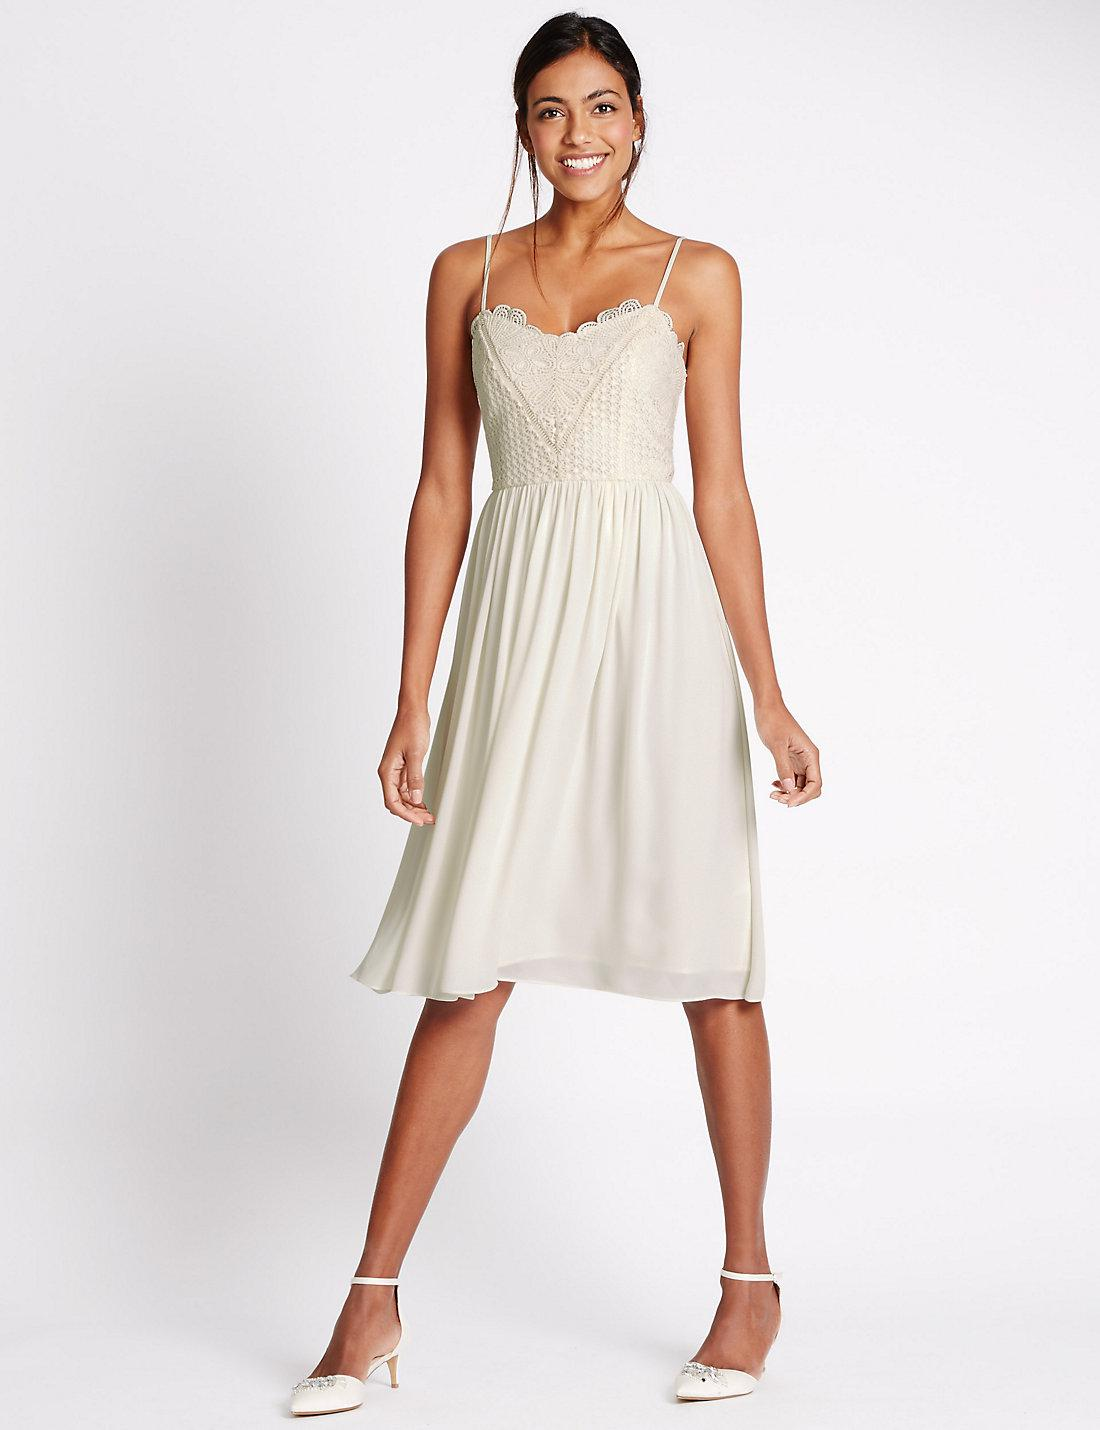 deaa015577 Marks & Spencer Floral Lace Slip Dress in White - Lyst